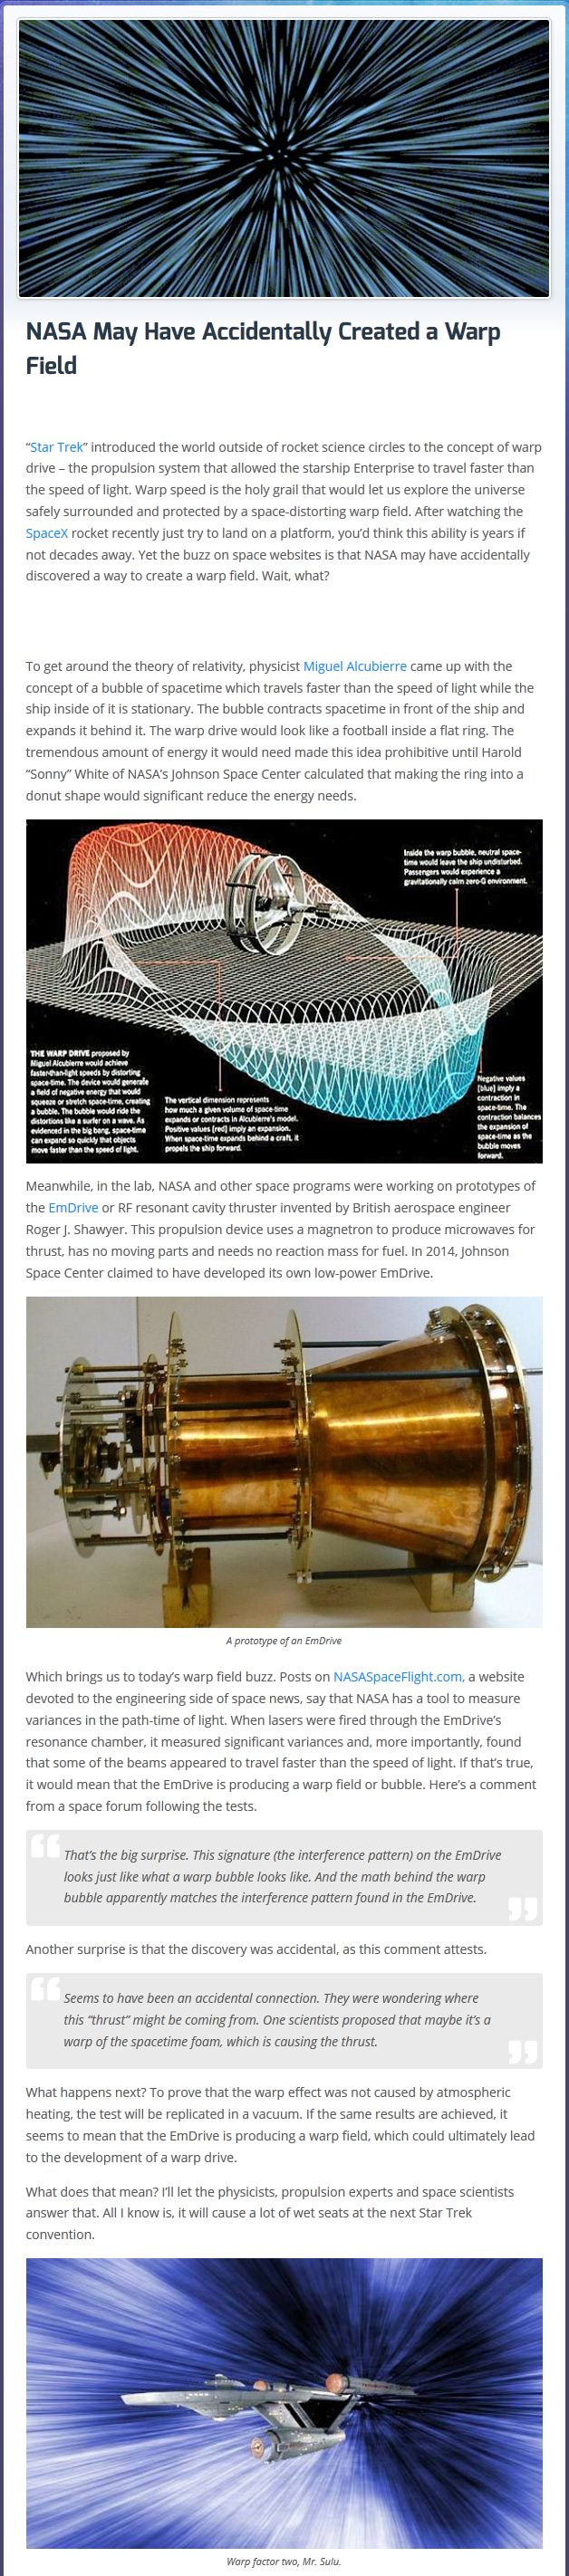 NASA May Have Accidentally Created a Warp Field...FALSE.  see:  http://www.theskepticsguide.org/4-reasons-why-the-em-drive-is-probably-bullshit